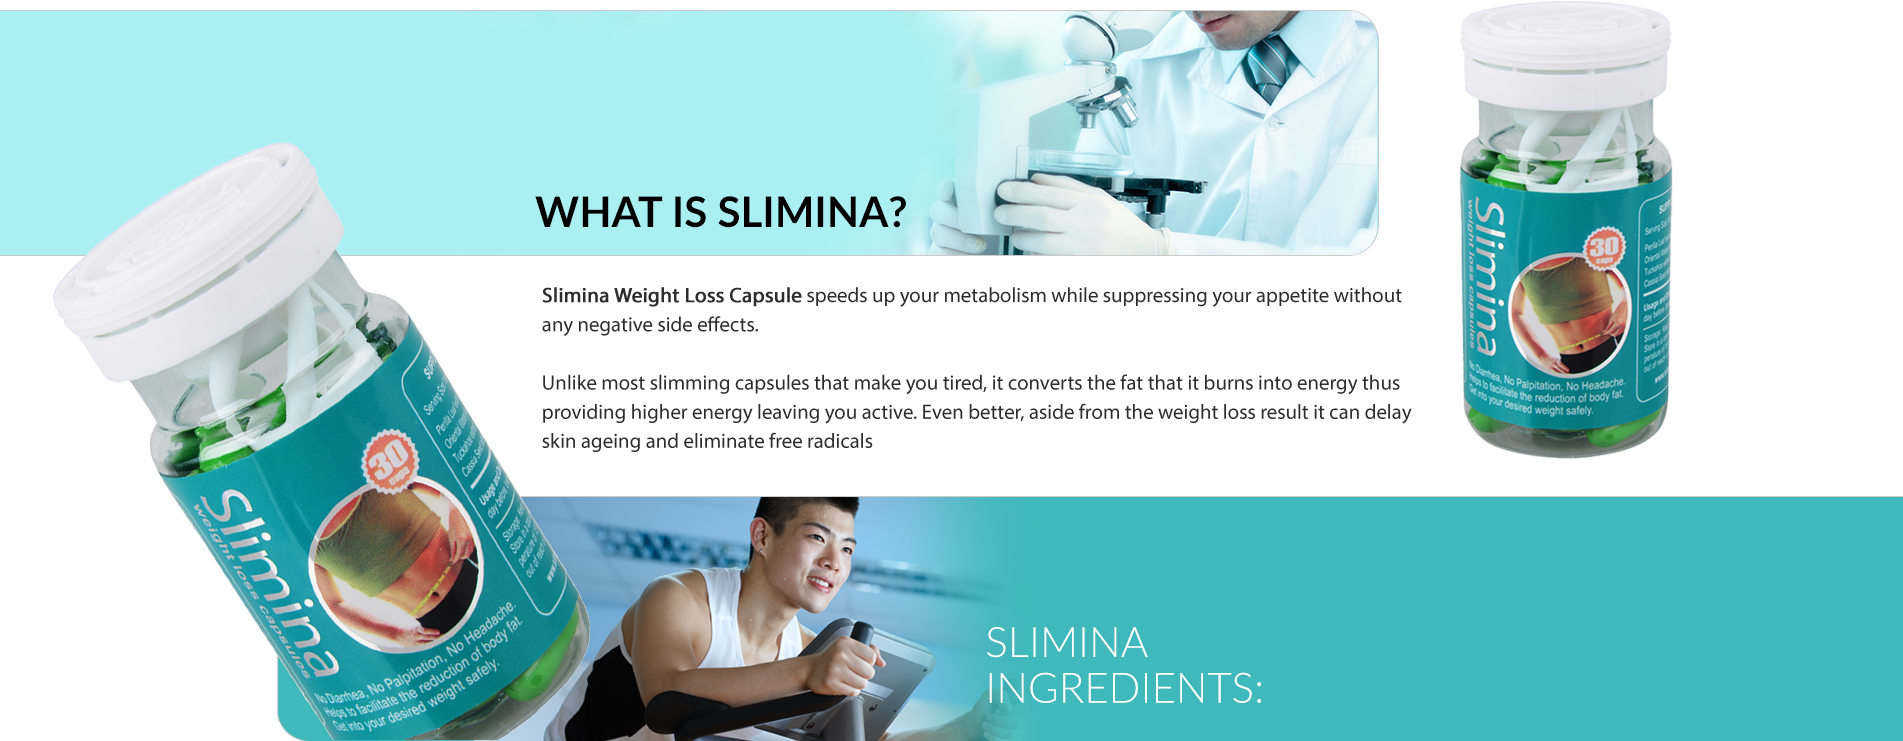 What-is-slimina